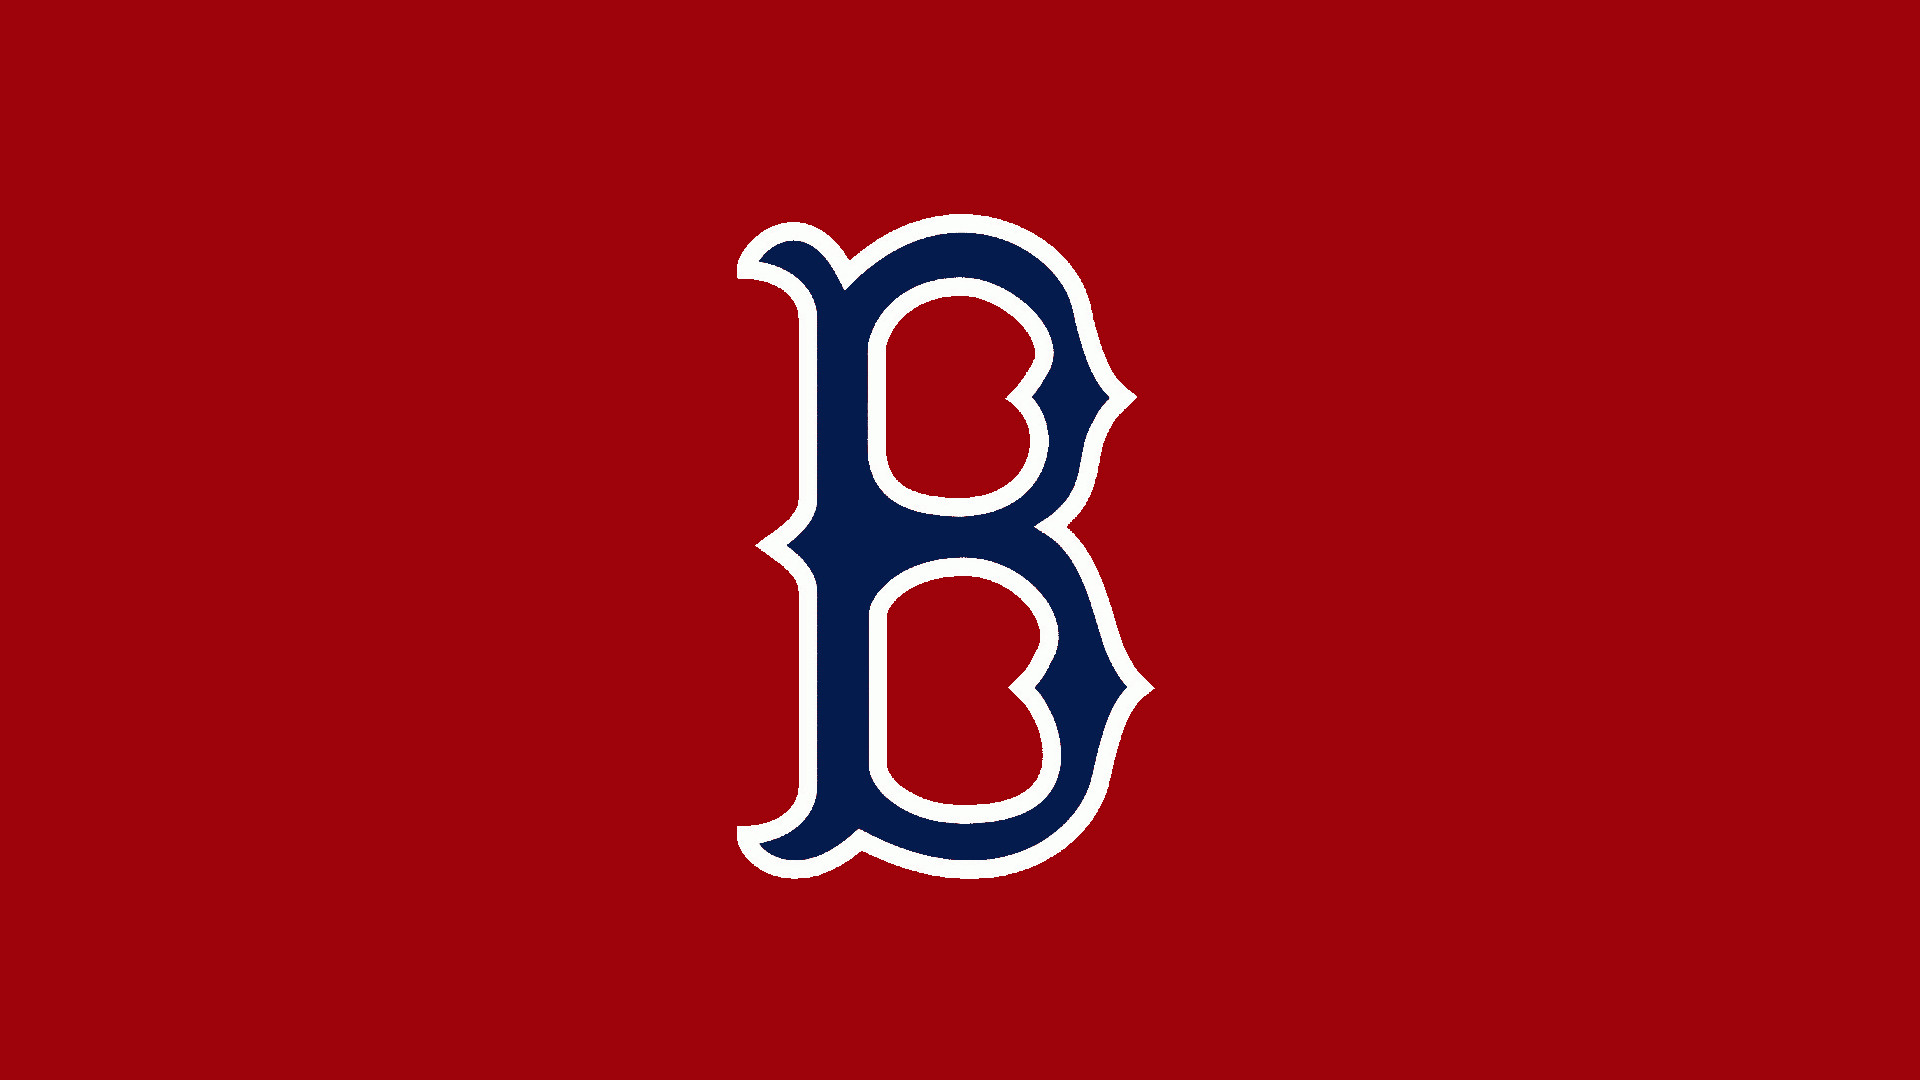 1920x1080 Boston Red Sox Wallpapers | HD Wallpapers Base